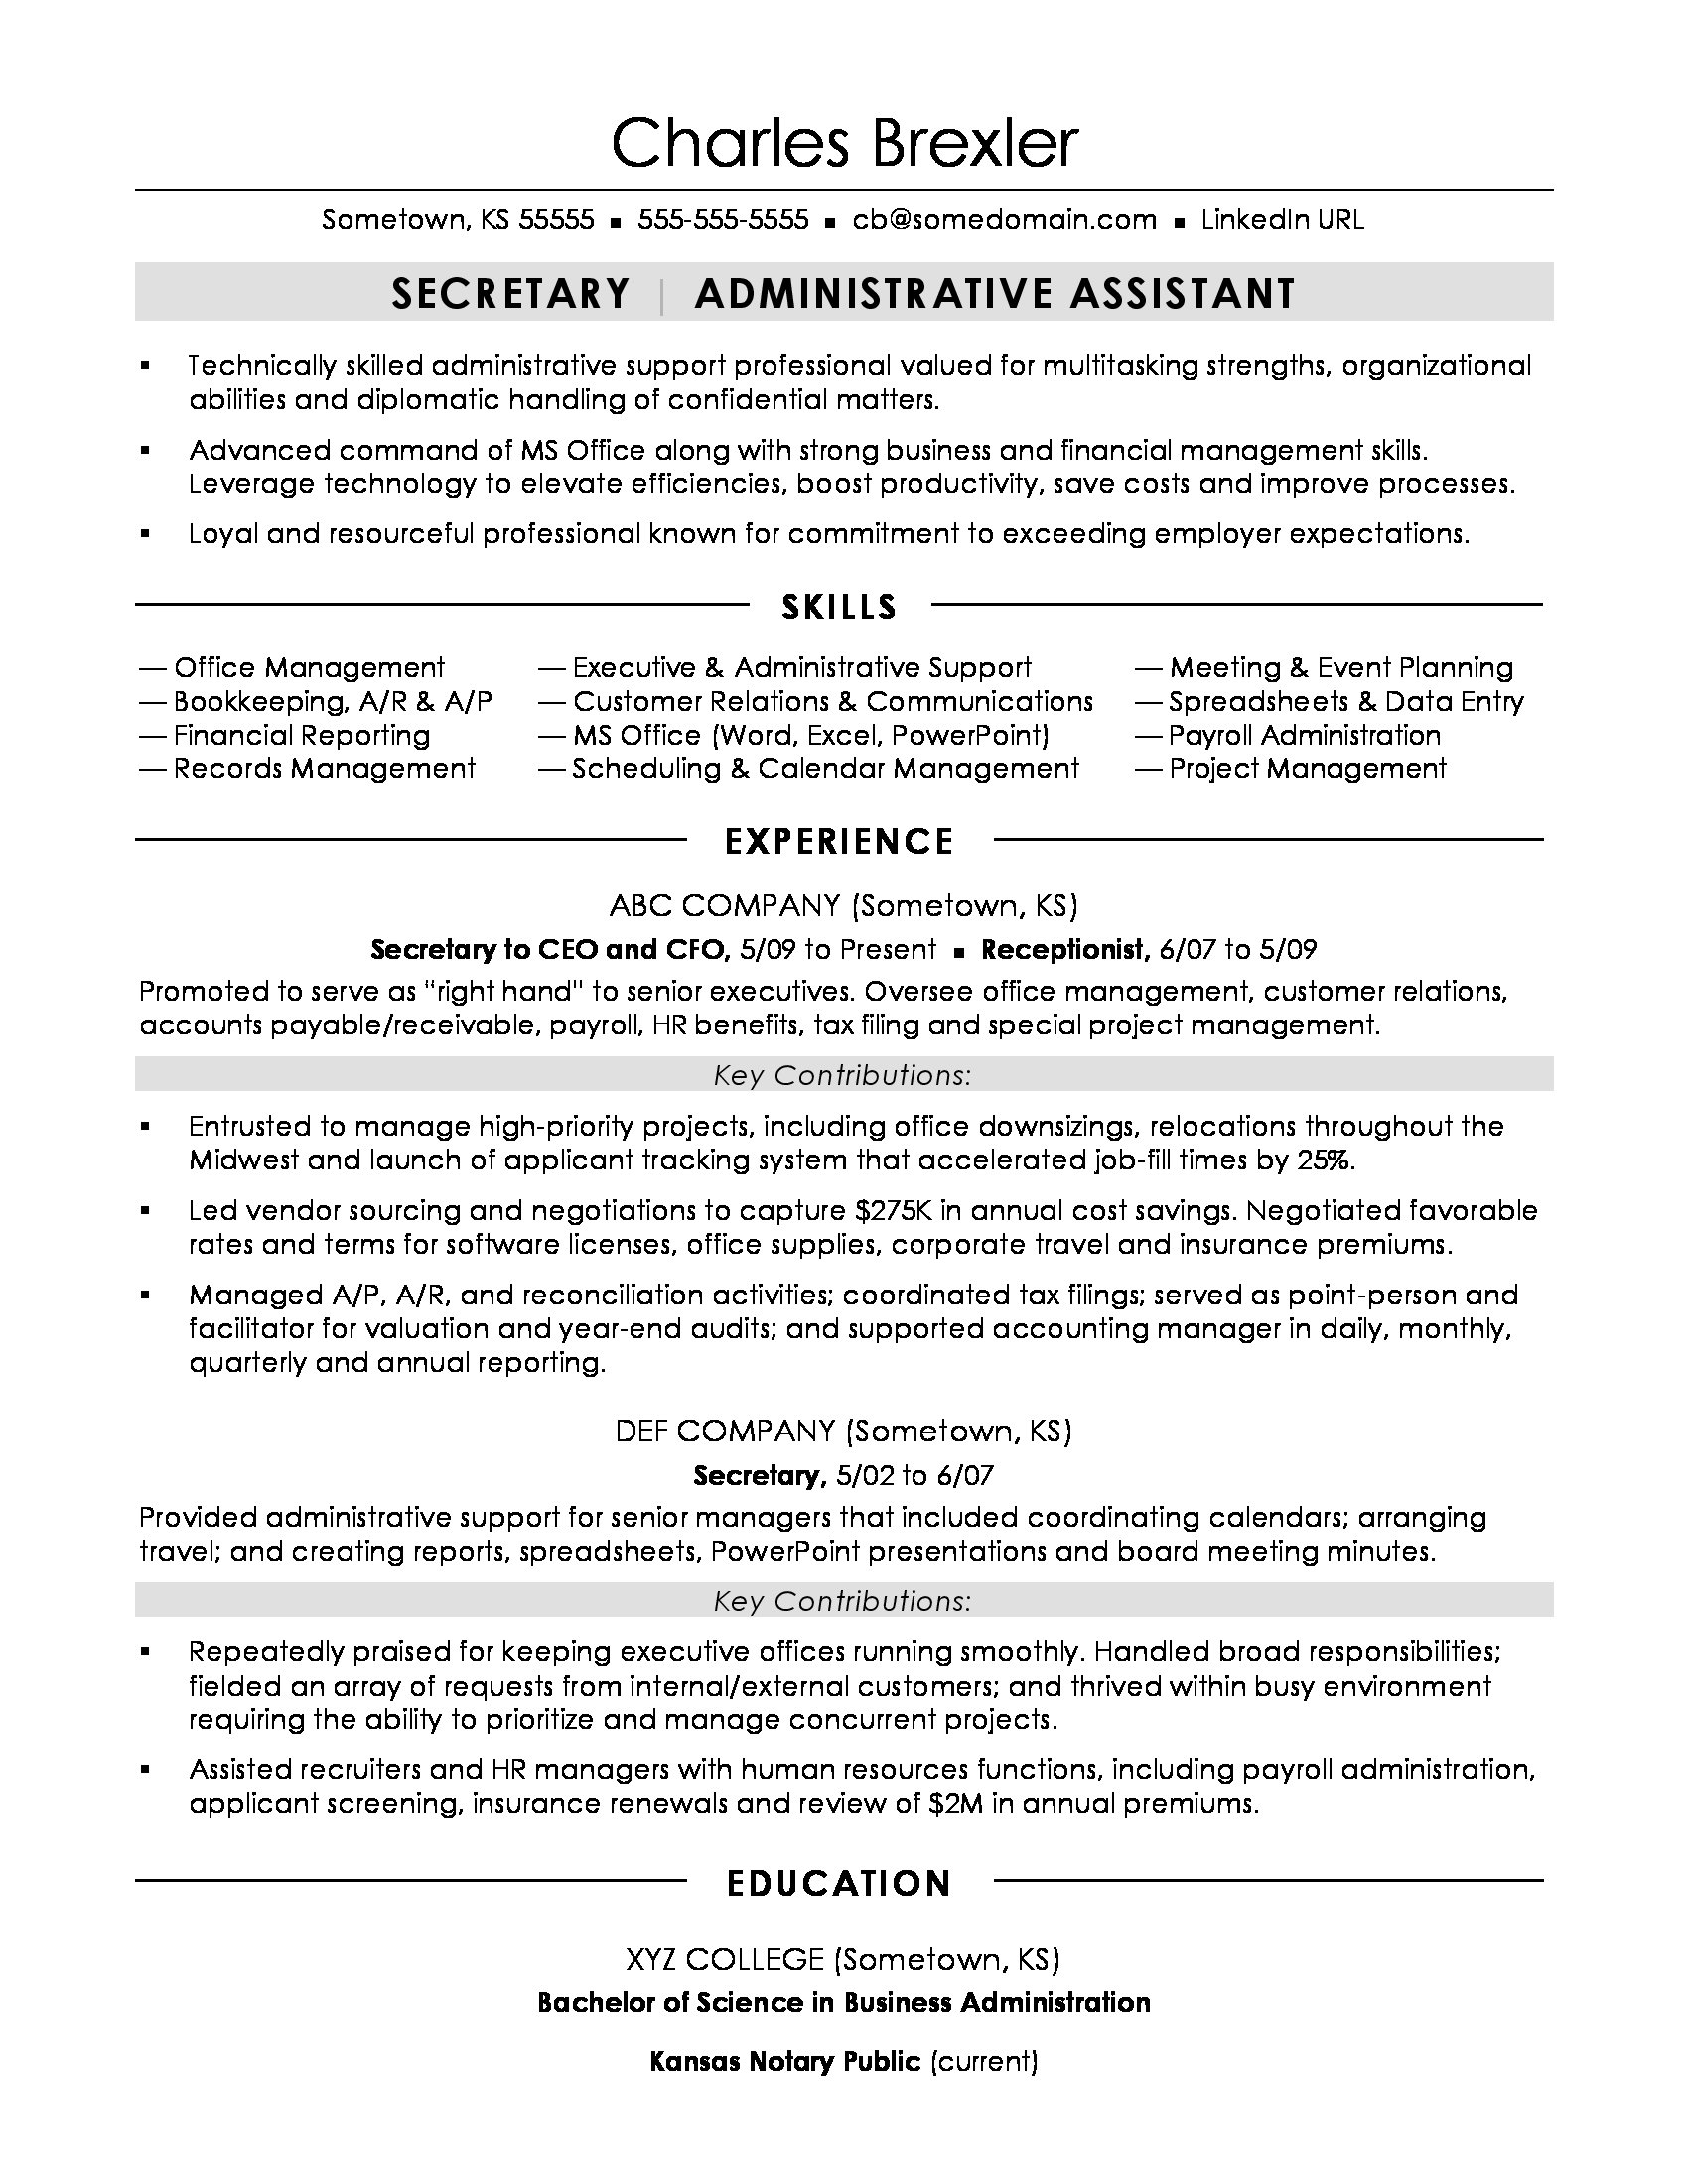 resume Duties Of A Secretary For A Resume secretary resume sample monster com sample